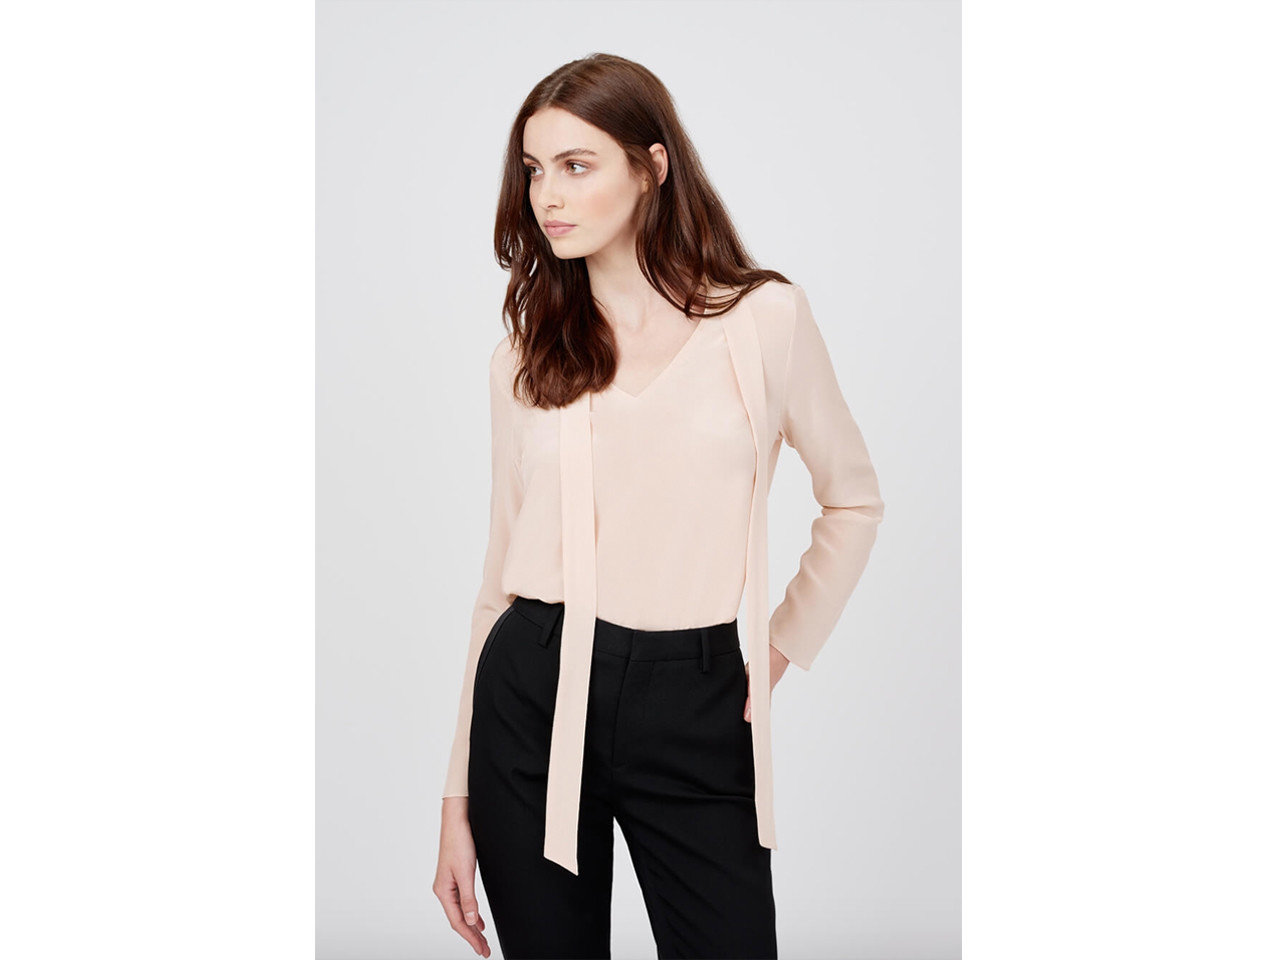 France Style + Design Travel Shop clothing person posing fashion model shoulder standing sleeve neck suit joint waist blouse dressed trouser